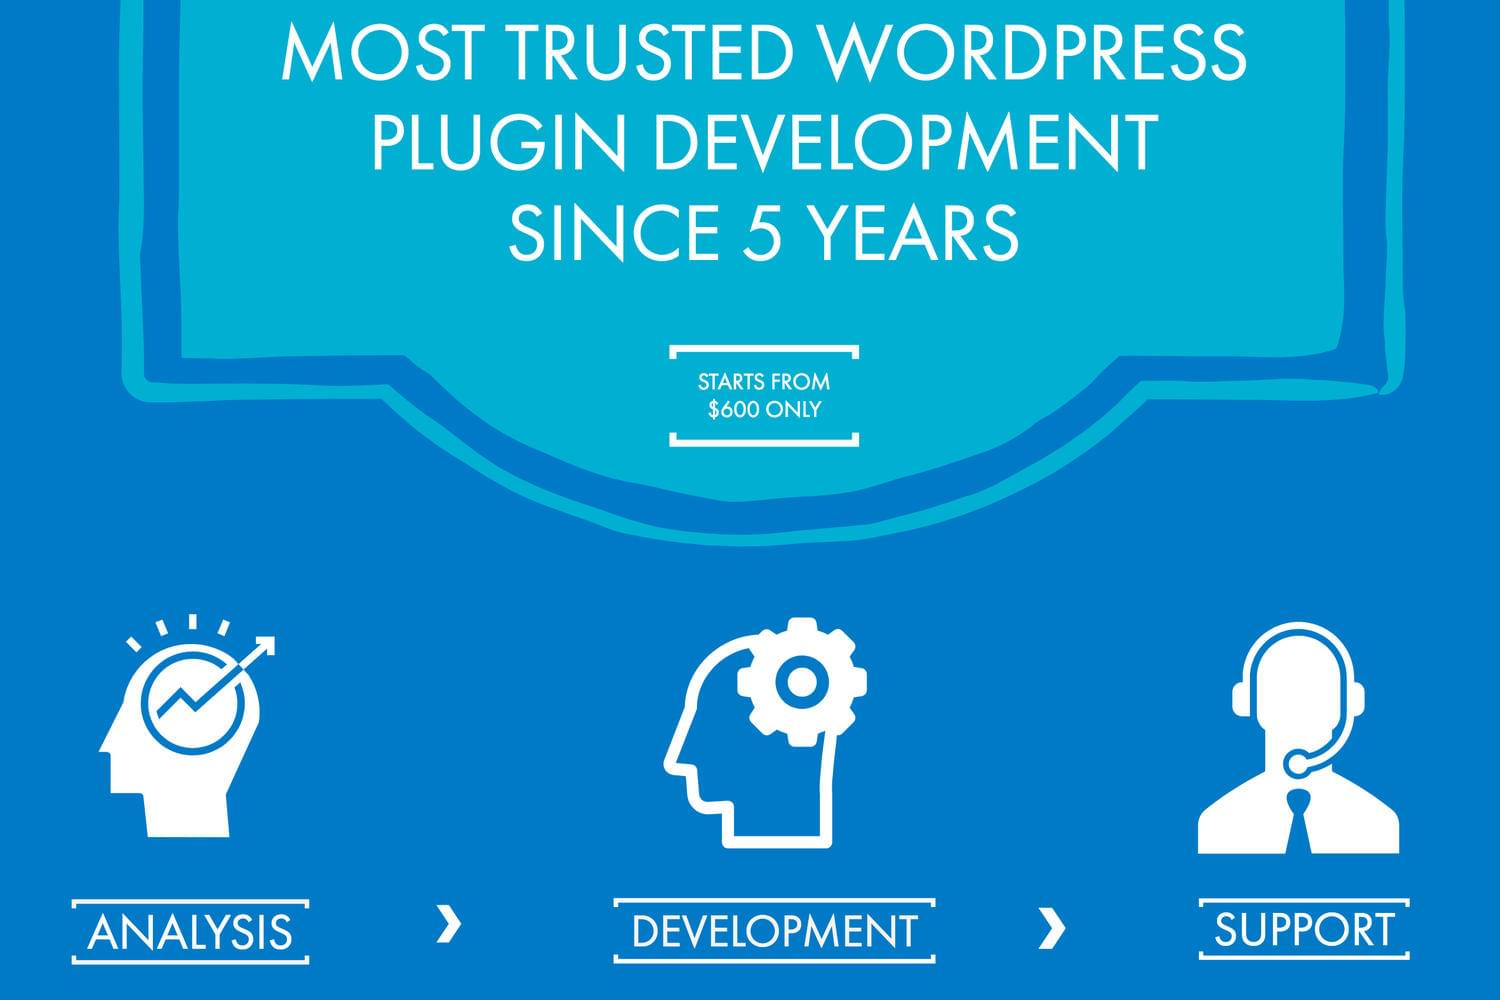 New Wordpress Plugin Development by cWebConsultants on